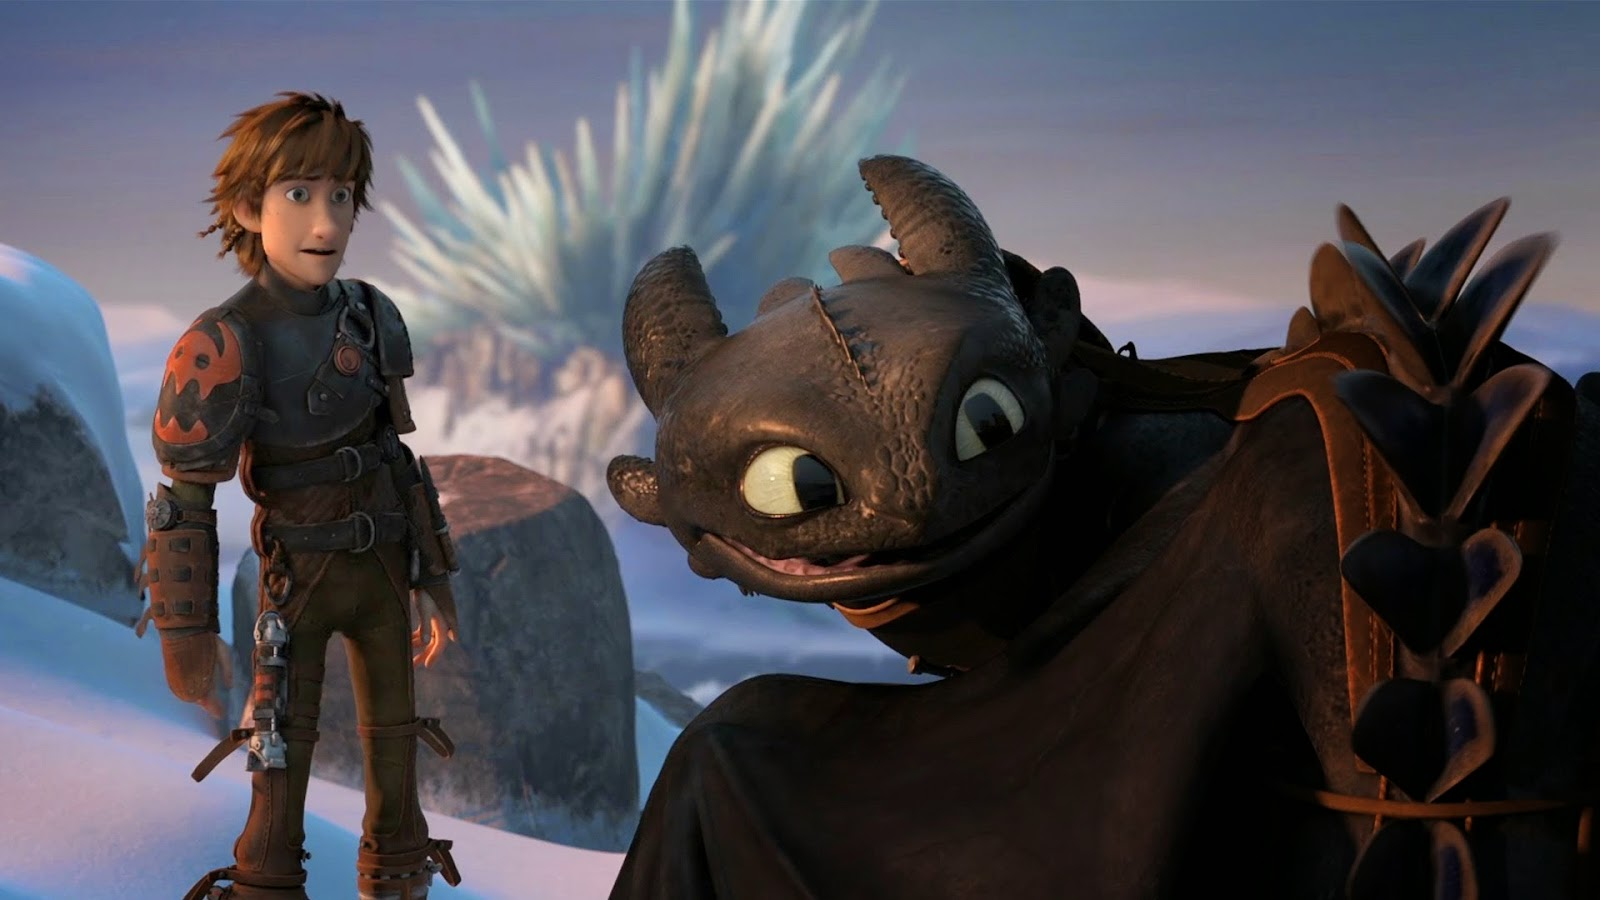 How To Train Your Dragon 2 Toothless and Hiccup still